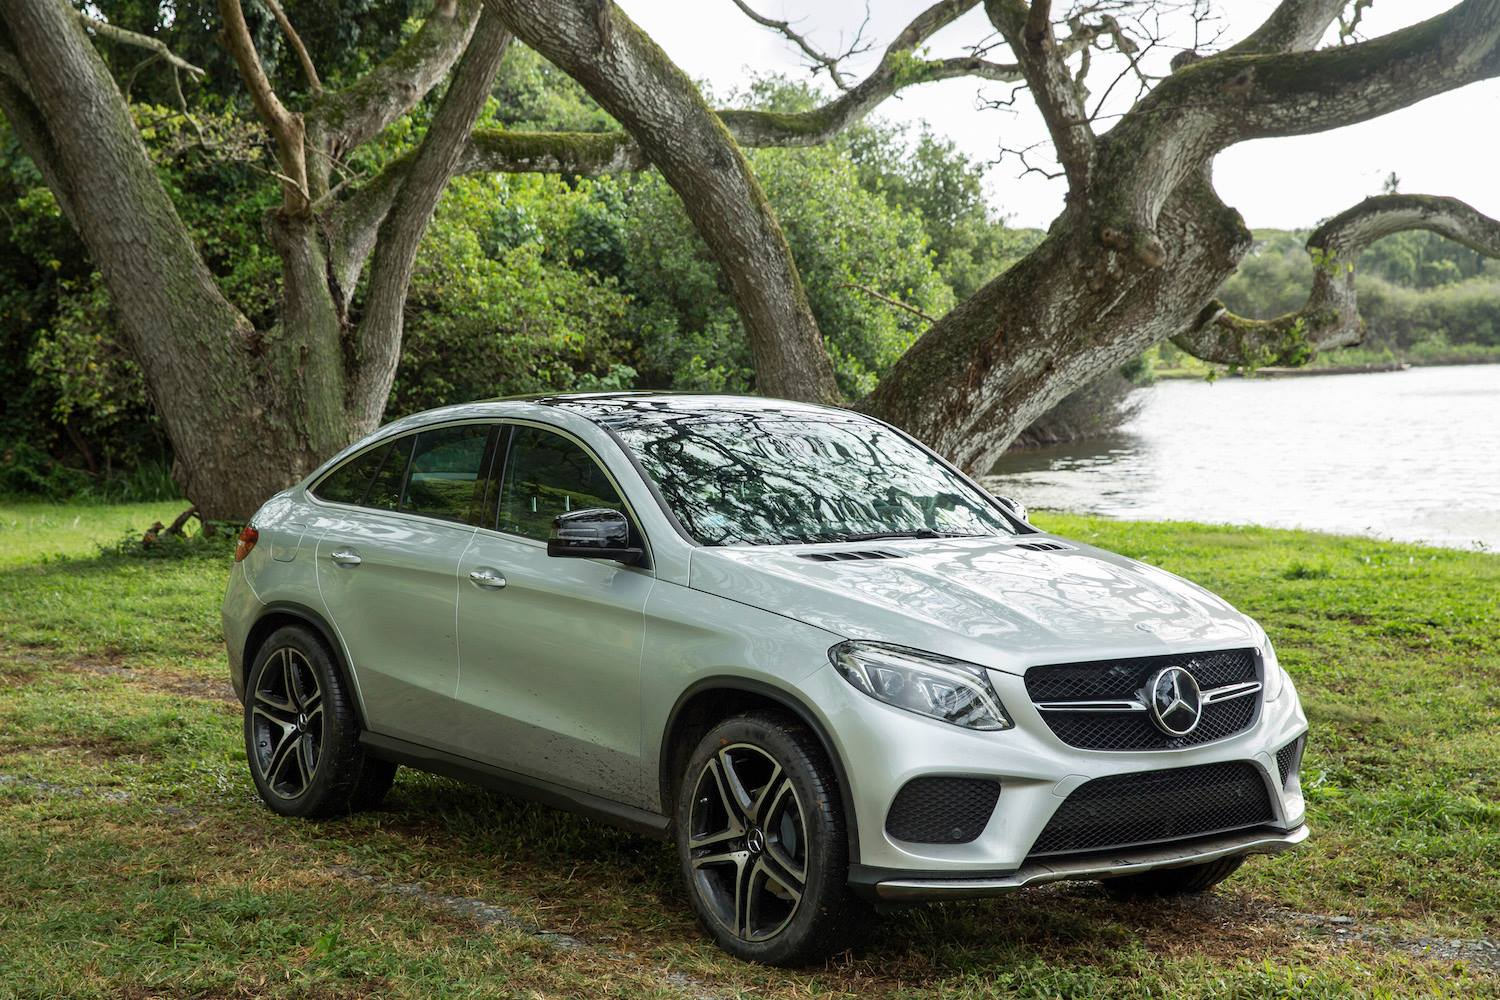 mercedes gle coupe to be featured in jurassic world autoevolution. Black Bedroom Furniture Sets. Home Design Ideas